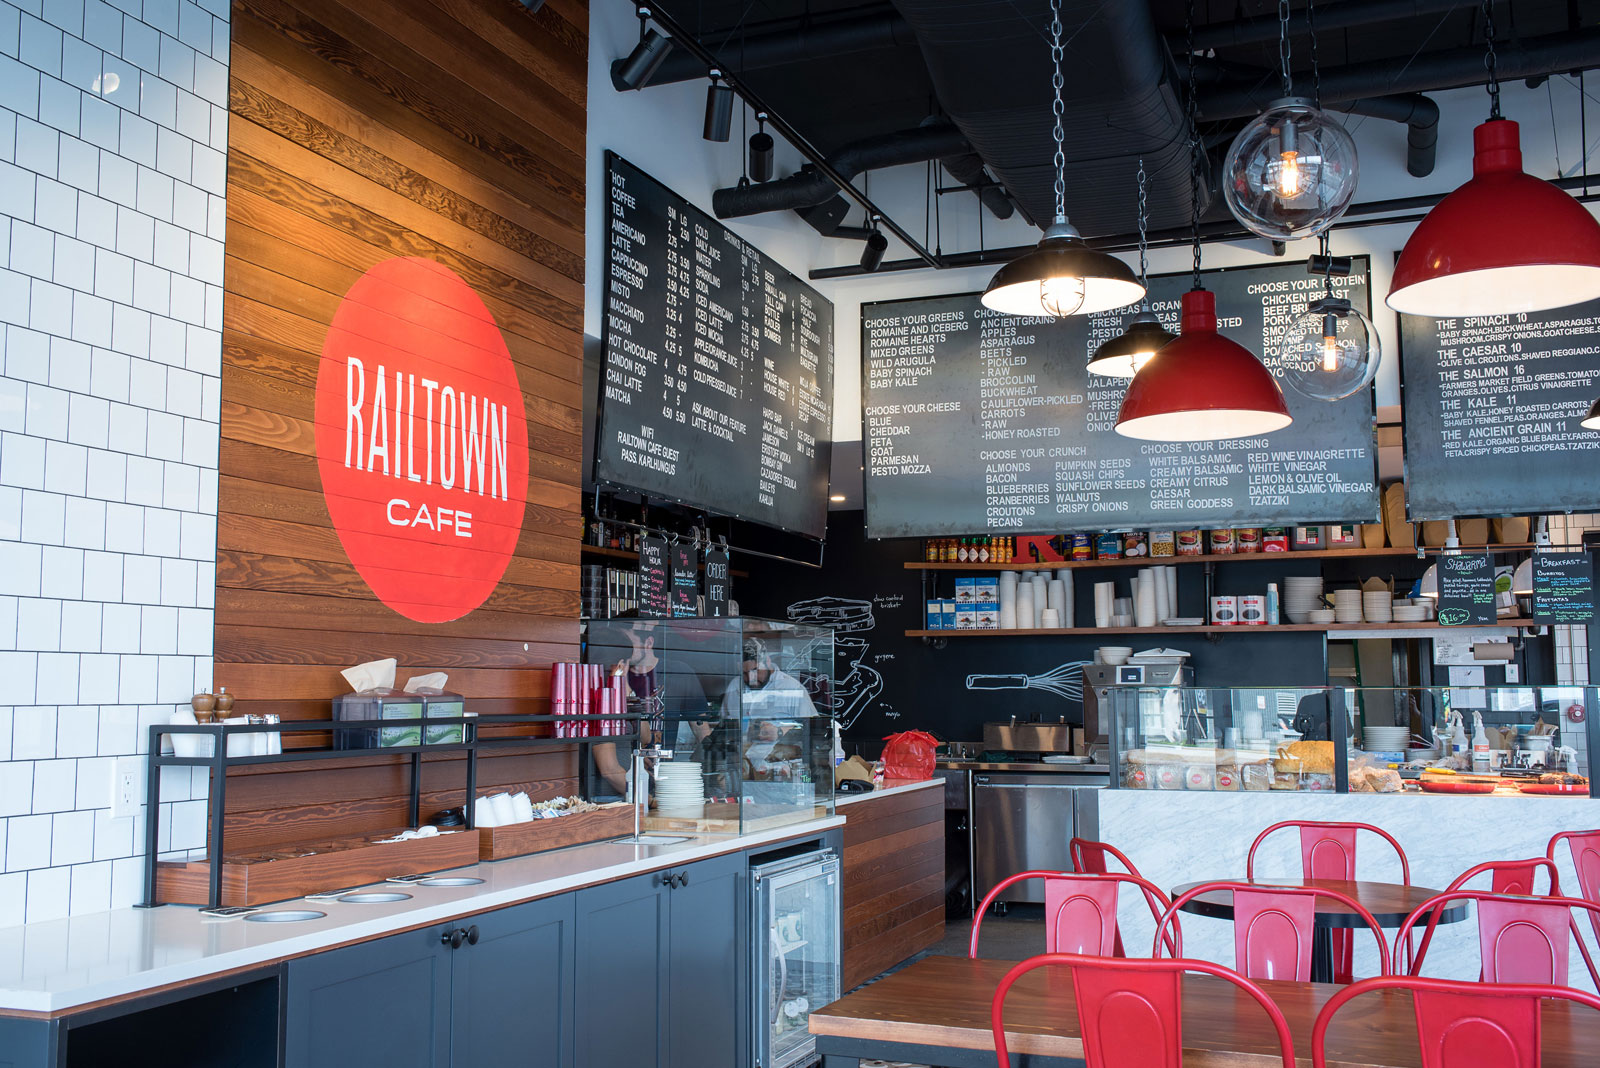 new location of railtown cafe now open at 1691 main street in